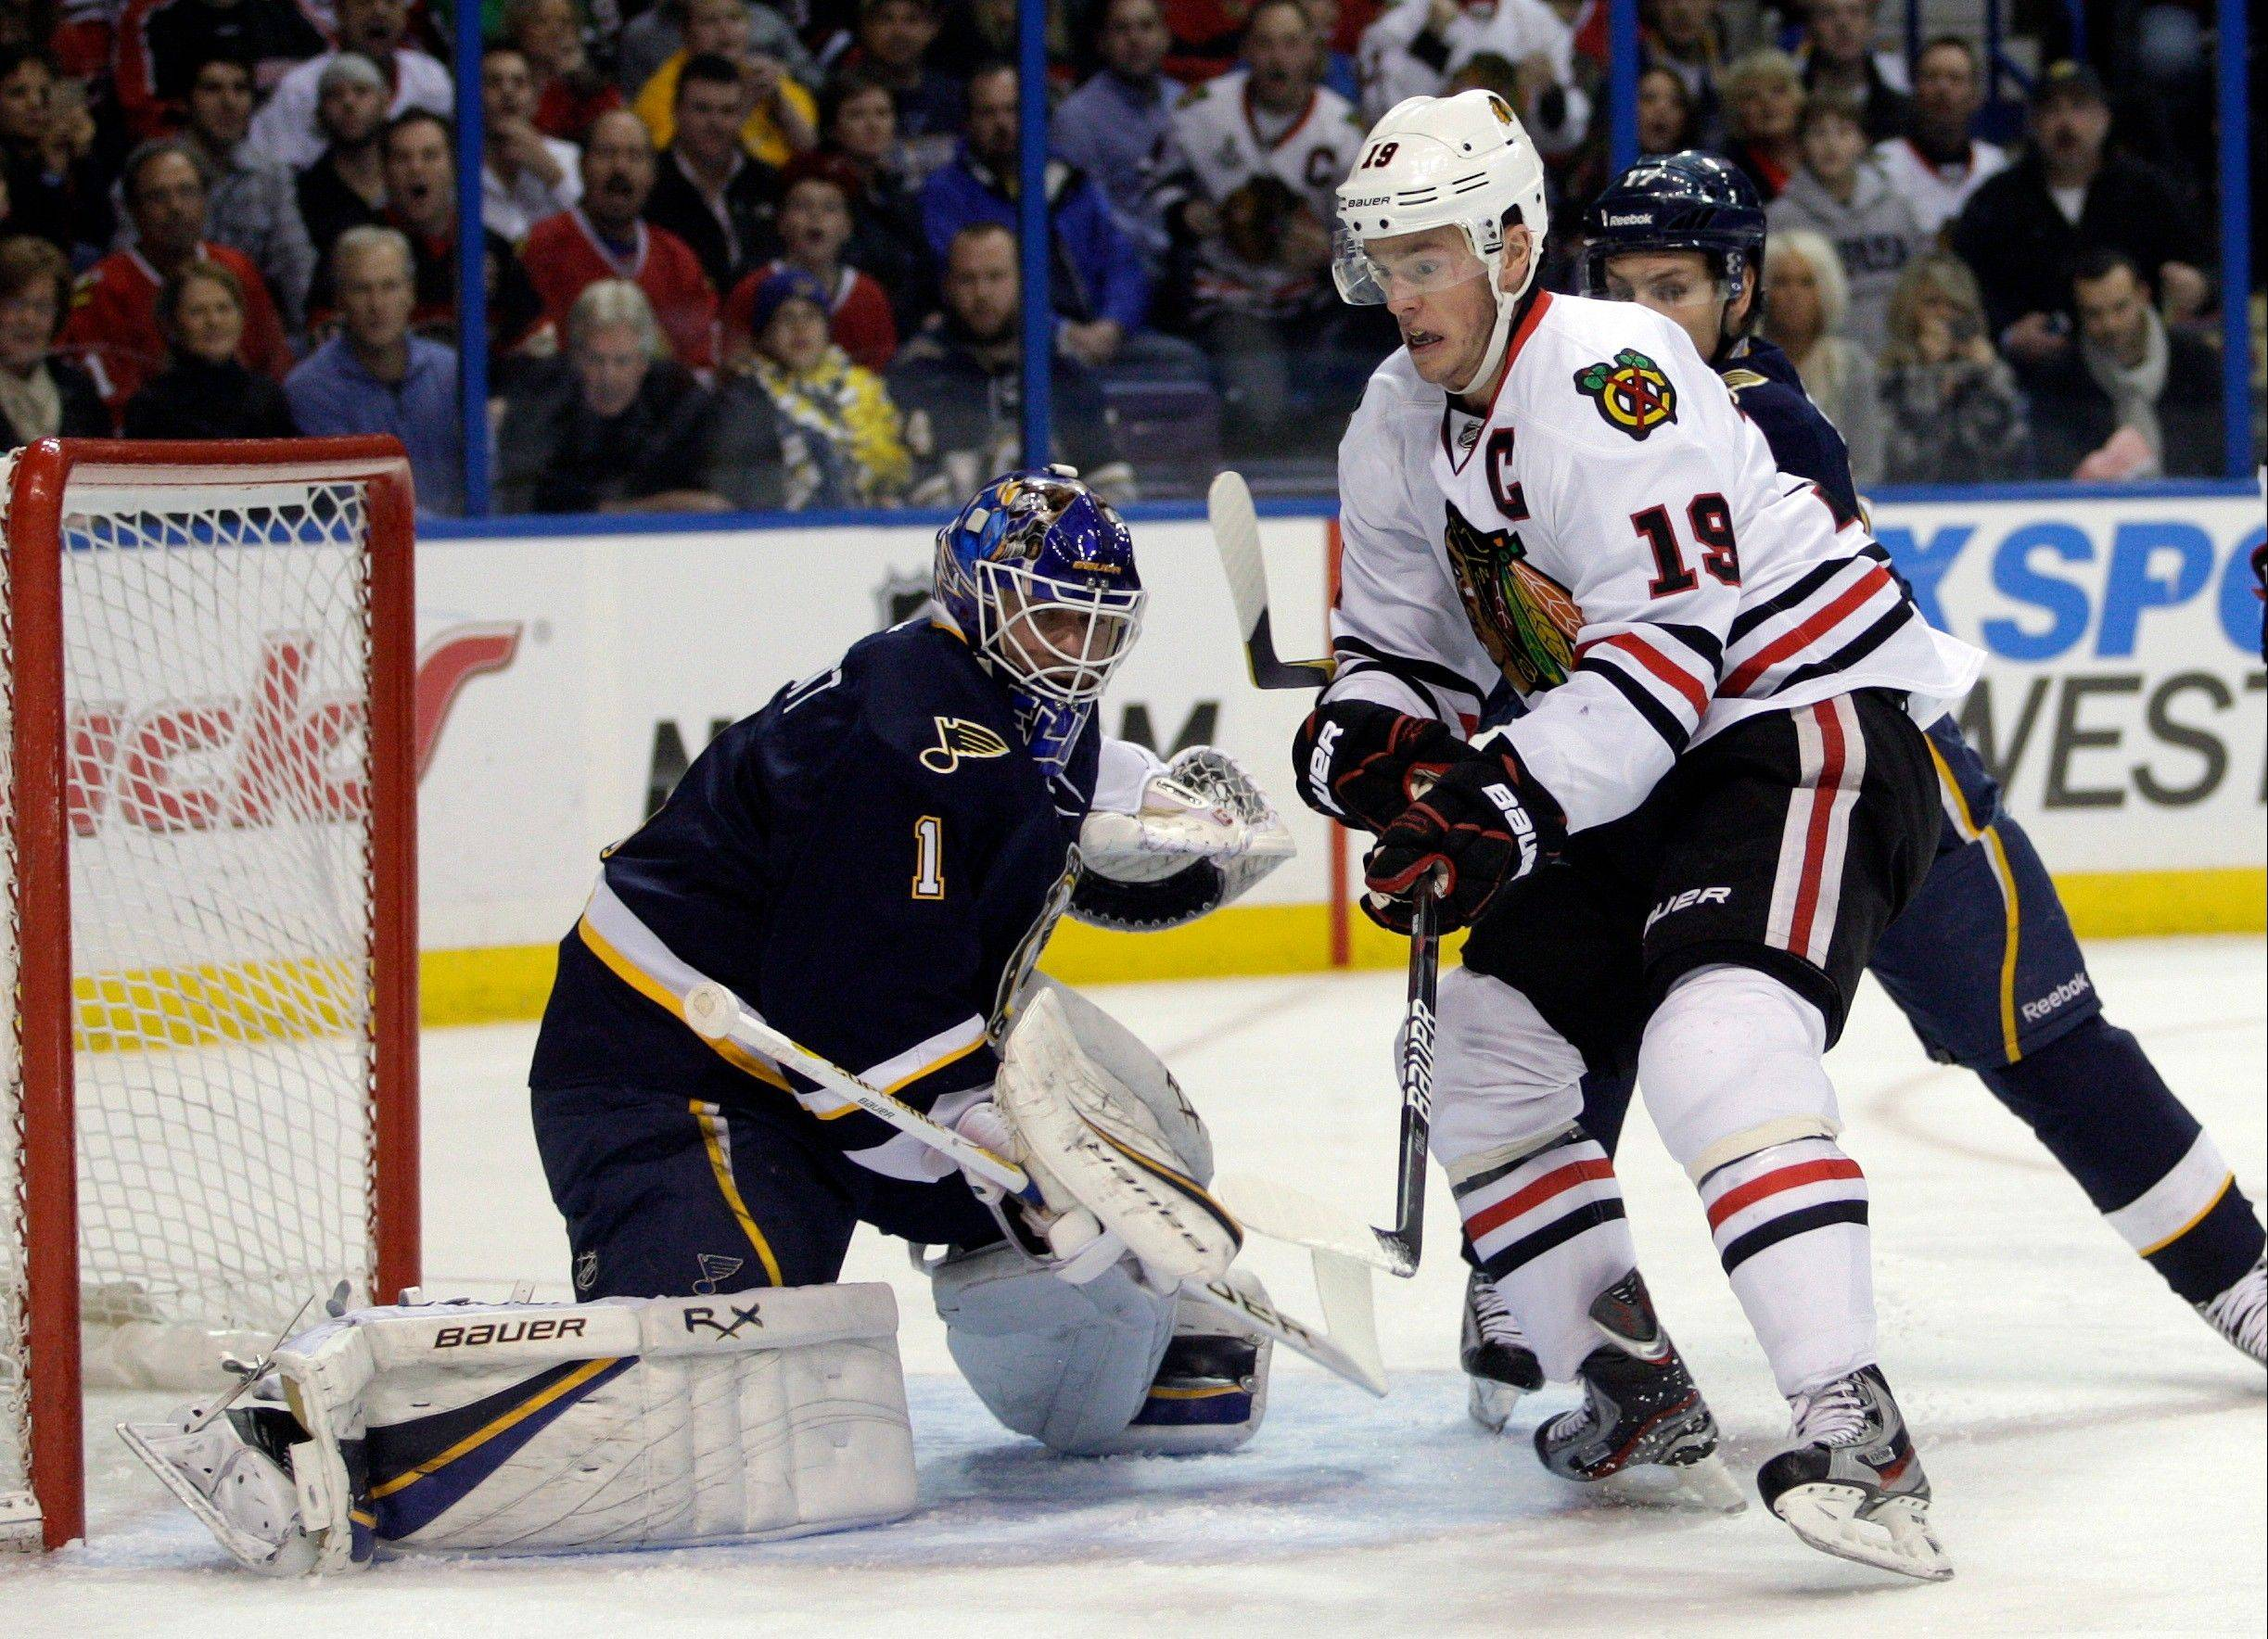 The Blackhawks and captain Jonathan Toews will have their hands full during the lockout-shortened season trying to keep up with goalie Brian Elliott and the defending Central Division champion St. Louis Blues.